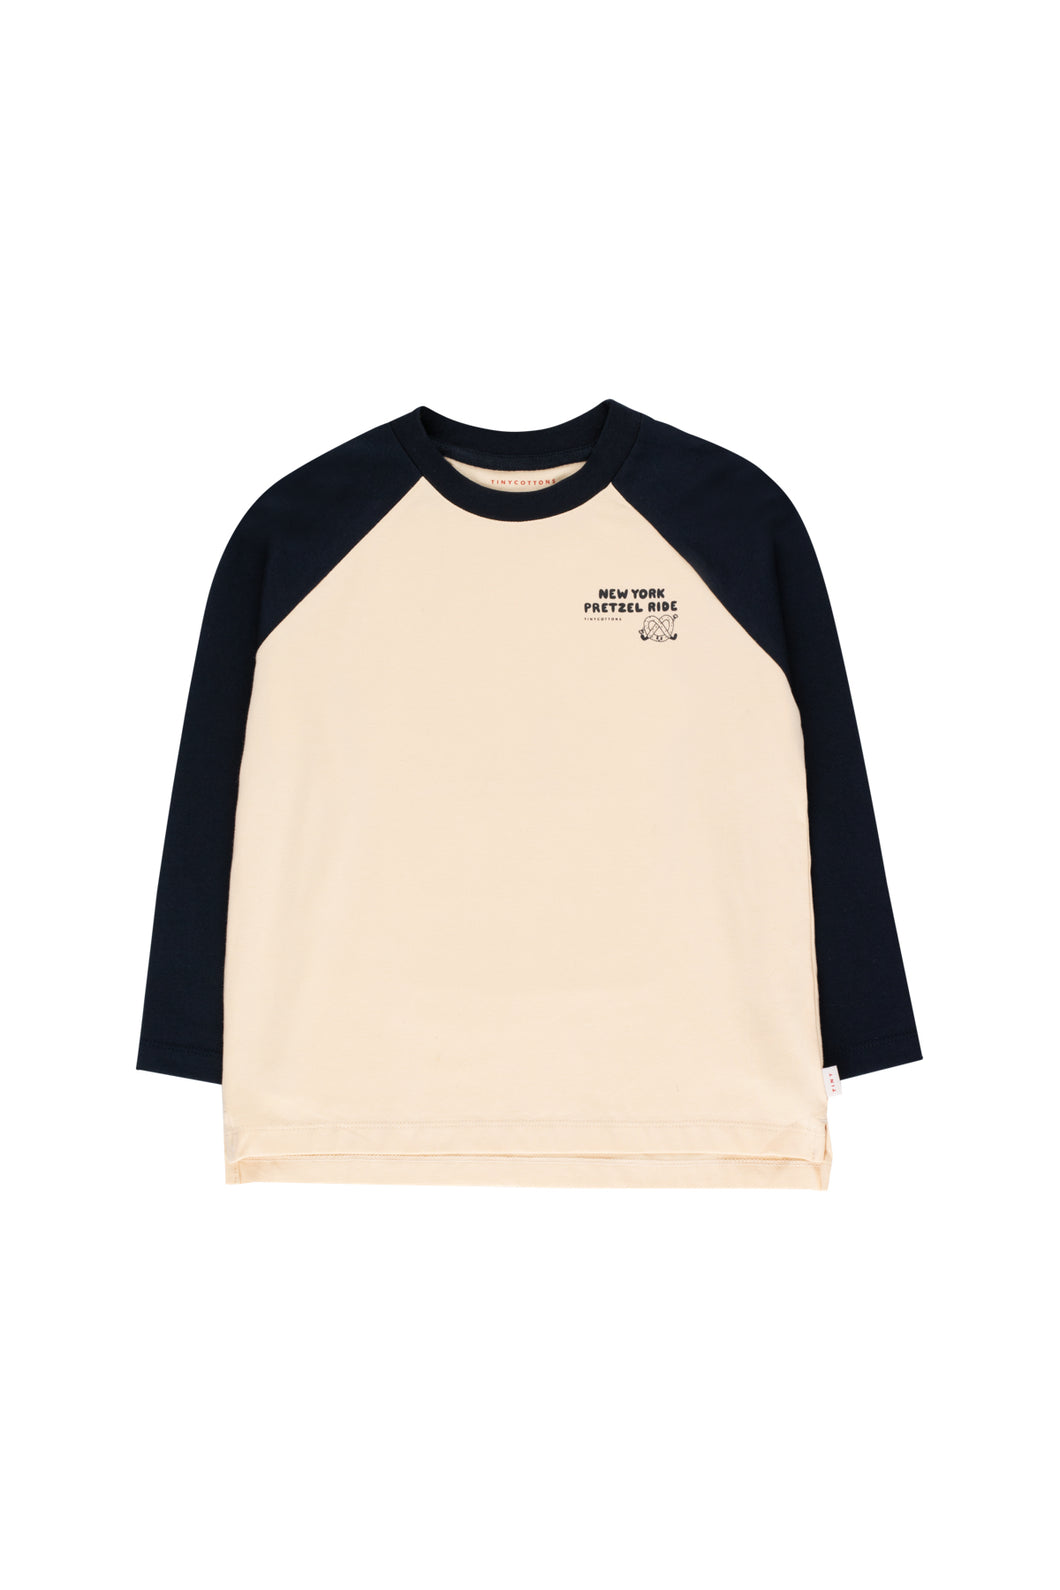 Pretzel Ride Color Block Tee